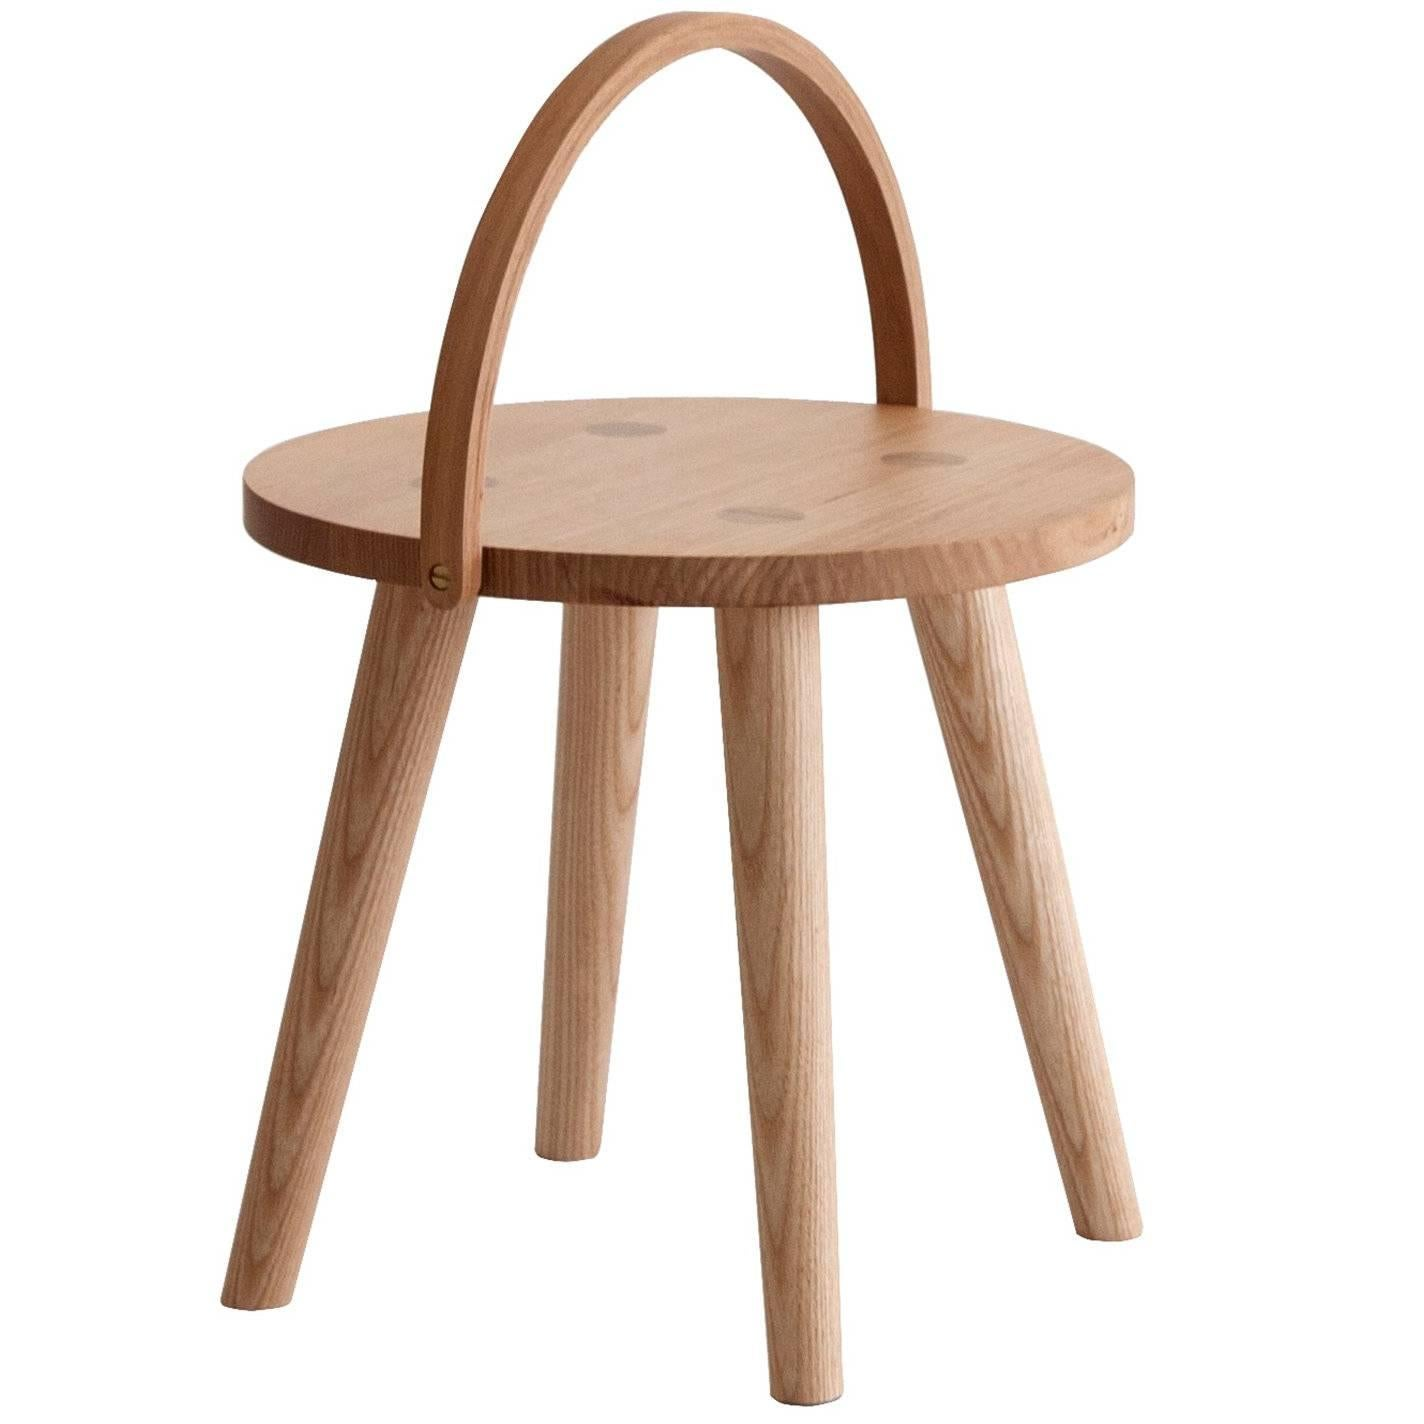 Step Bucket Stool, Low Seat or Side Table with Bentwood Handle in Solid Ash